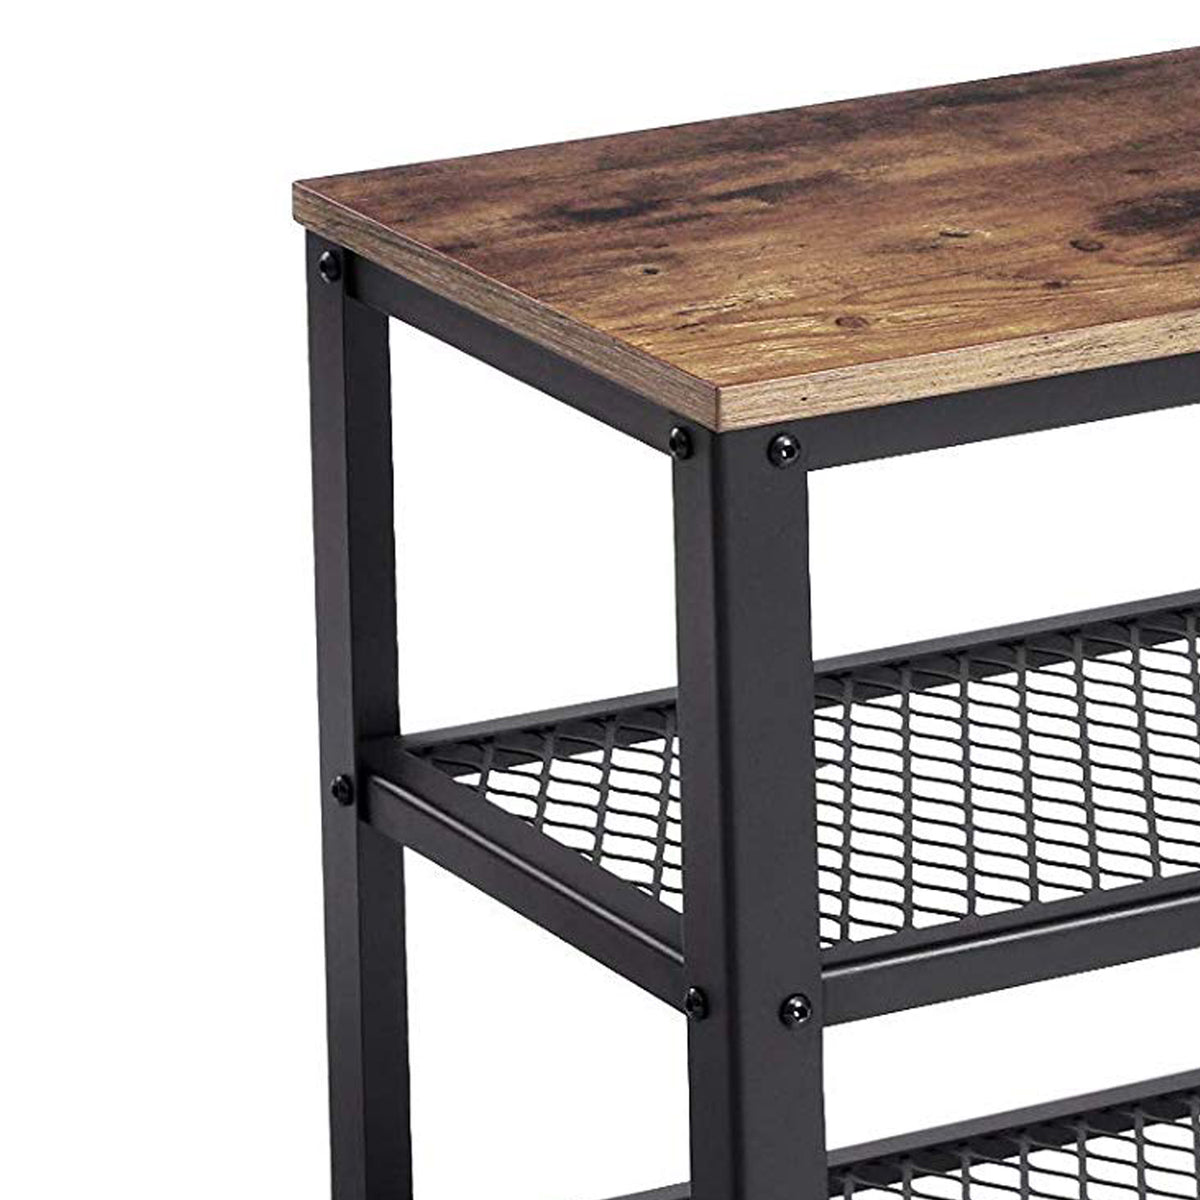 Picture of: Vintage Wood And Metal Shoe Rack With 2 Mesh Shelves Black And Brown Bm197488 Benzara Com